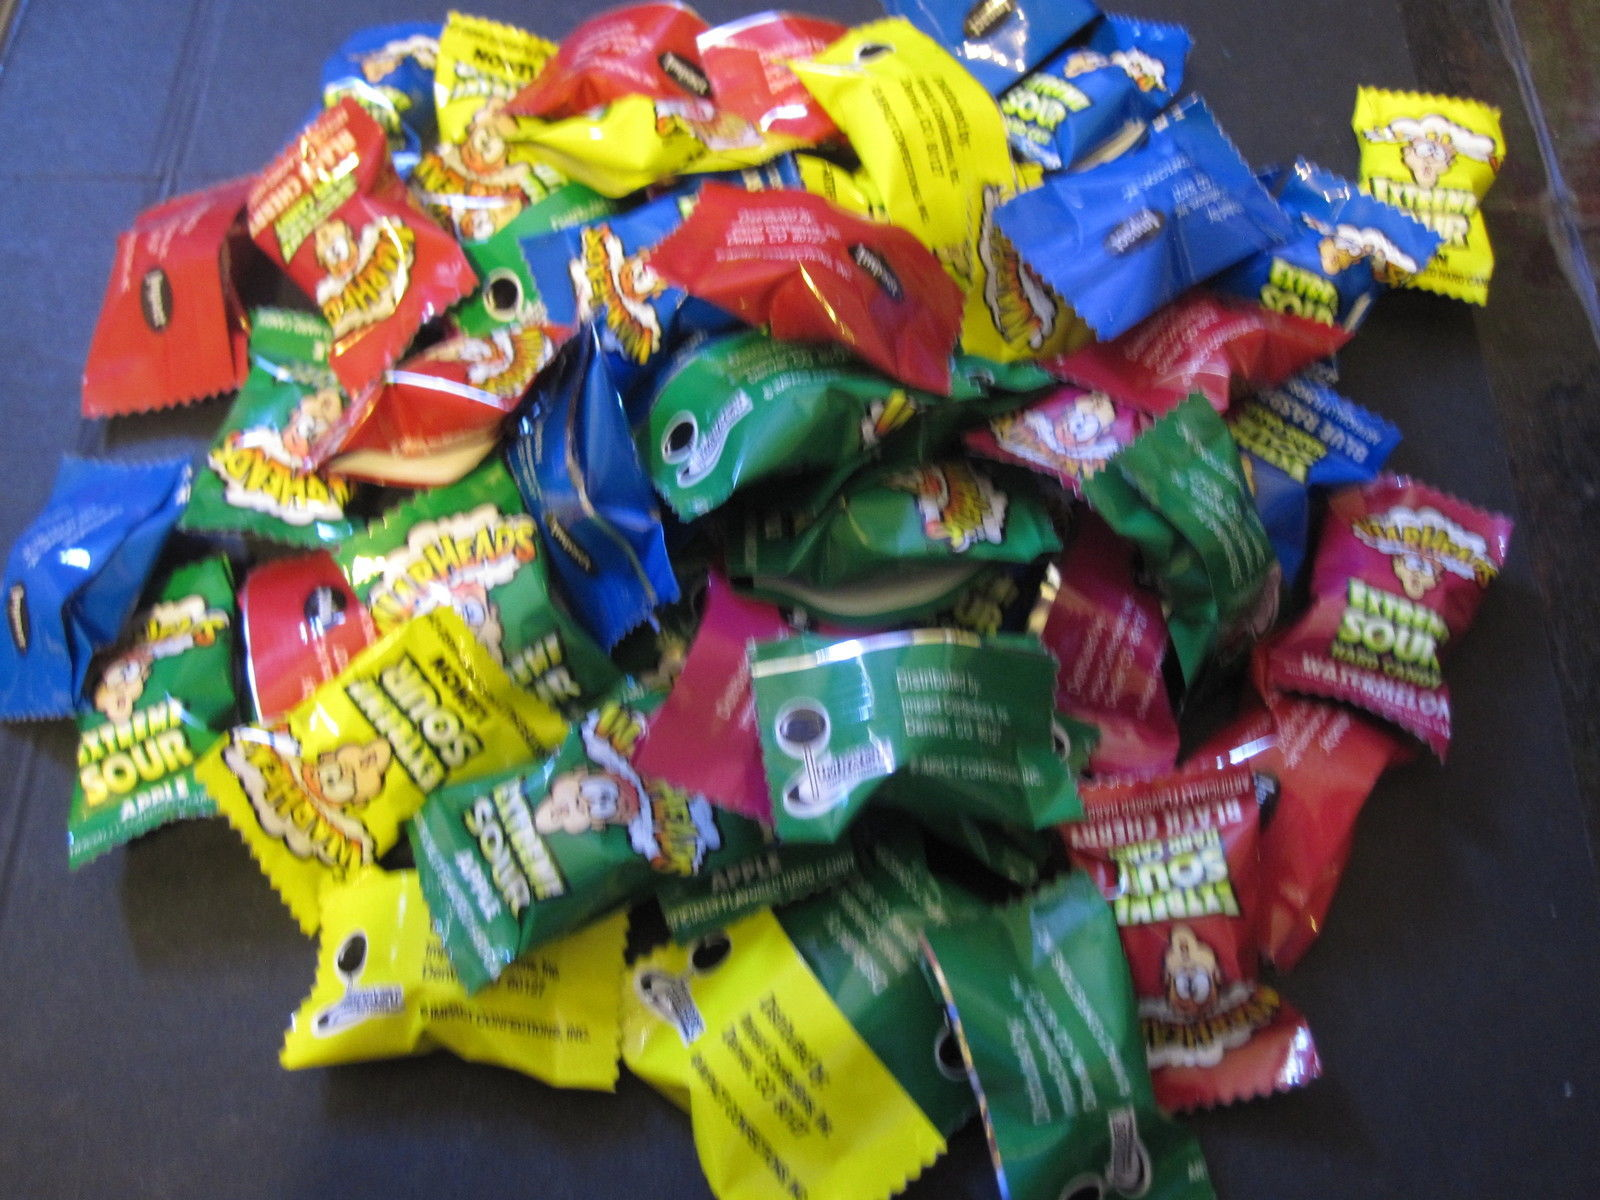 Warheads Extreme Sour Hard Candy 50 Pieces